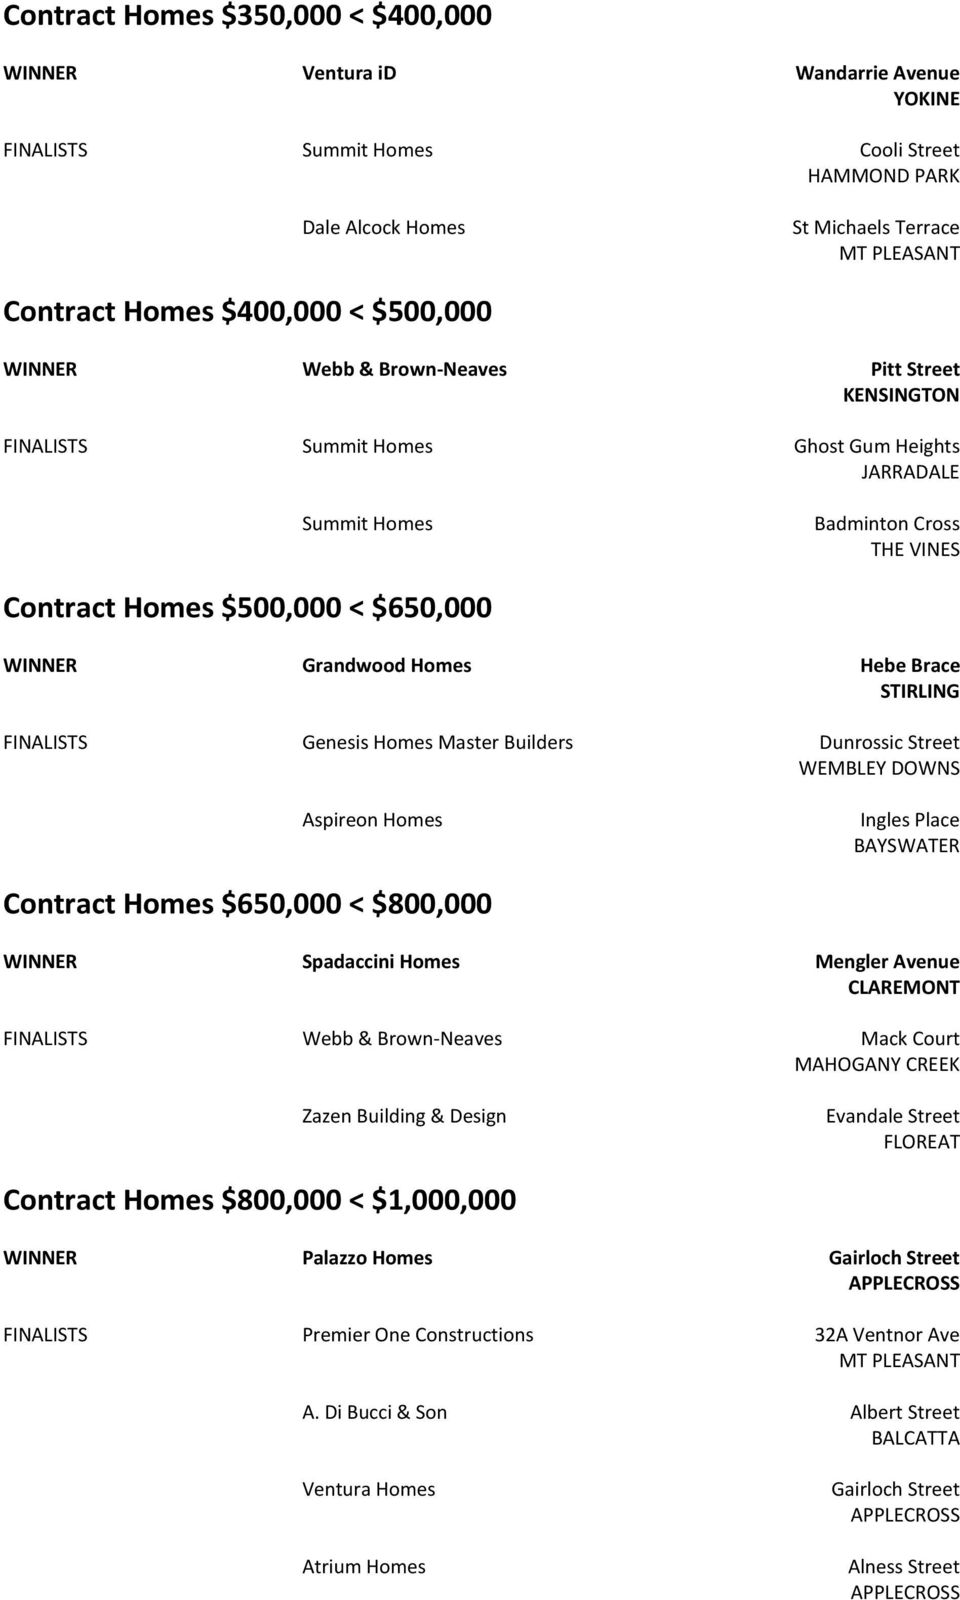 FINALISTS Genesis Homes Master Builders Dunrossic Street WEMBLEY DOWNS Aspireon Homes Ingles Place BAYSWATER Contract Homes $650,000 < $800,000 Spadaccini Homes Mengler Avenue CLAREMONT FINALISTS